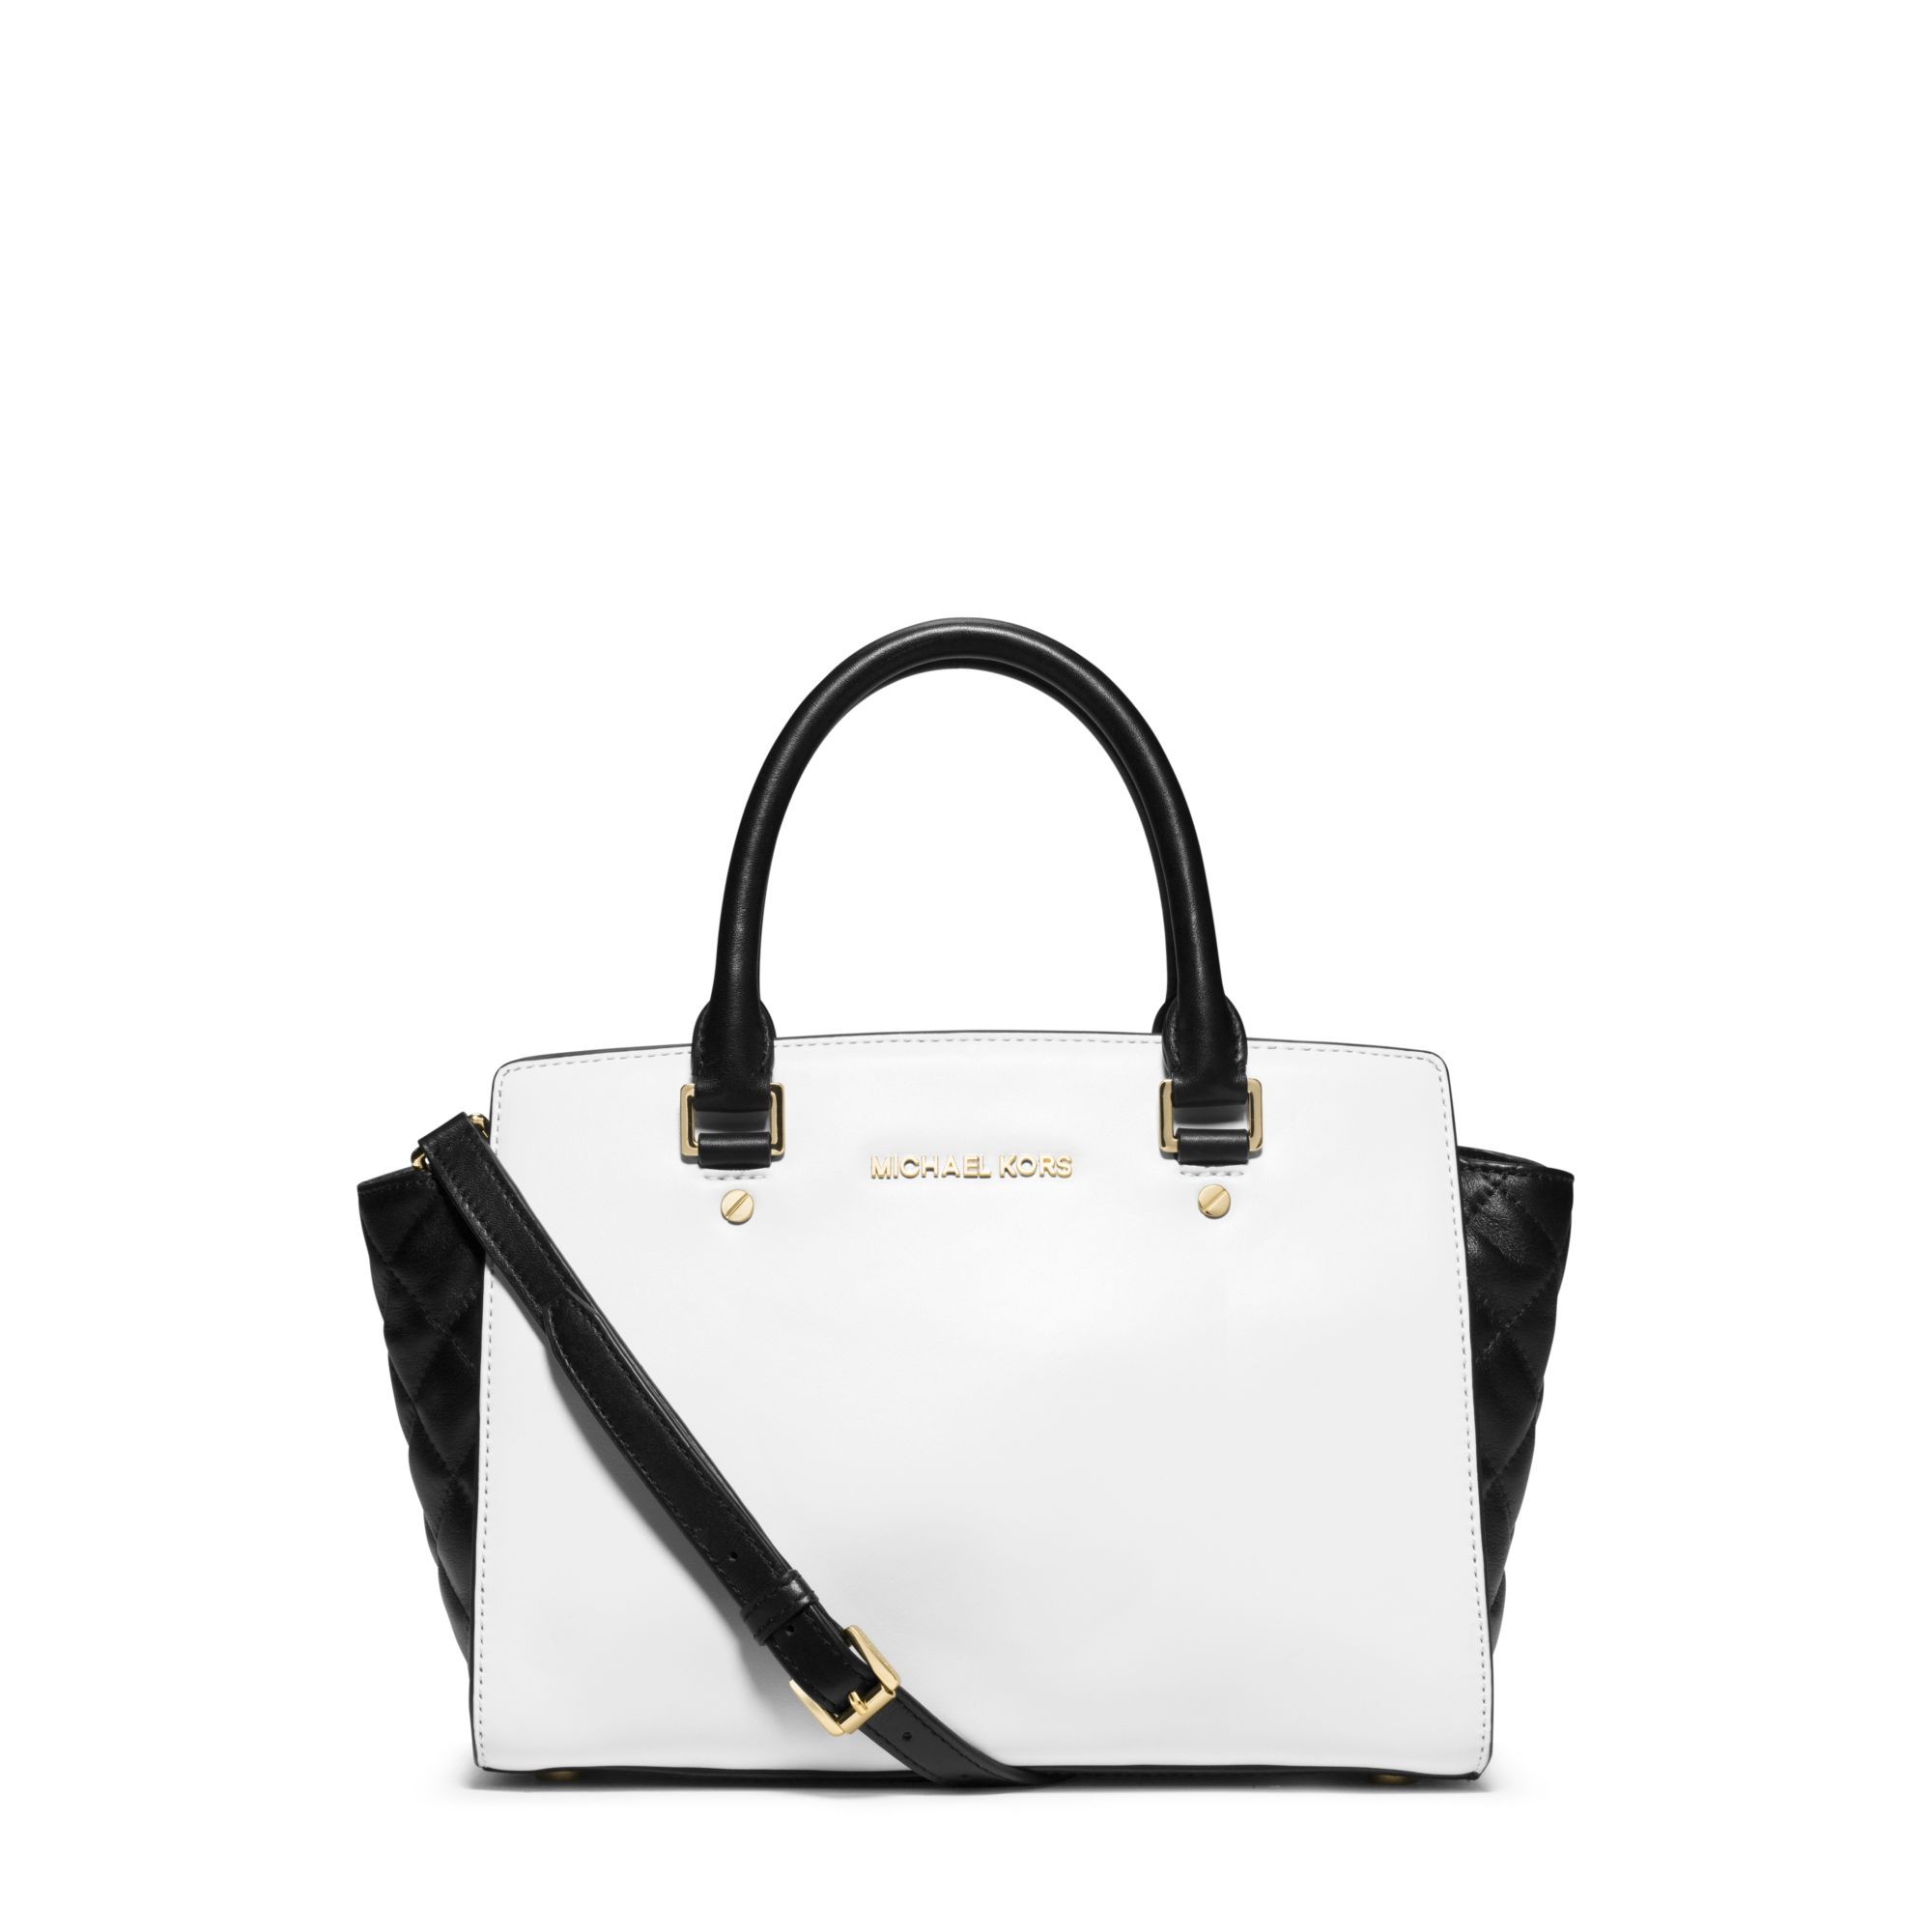 a7a8da9fc0ab0 Lyst - Michael Kors Selma Medium Color-block Leather Satchel in White